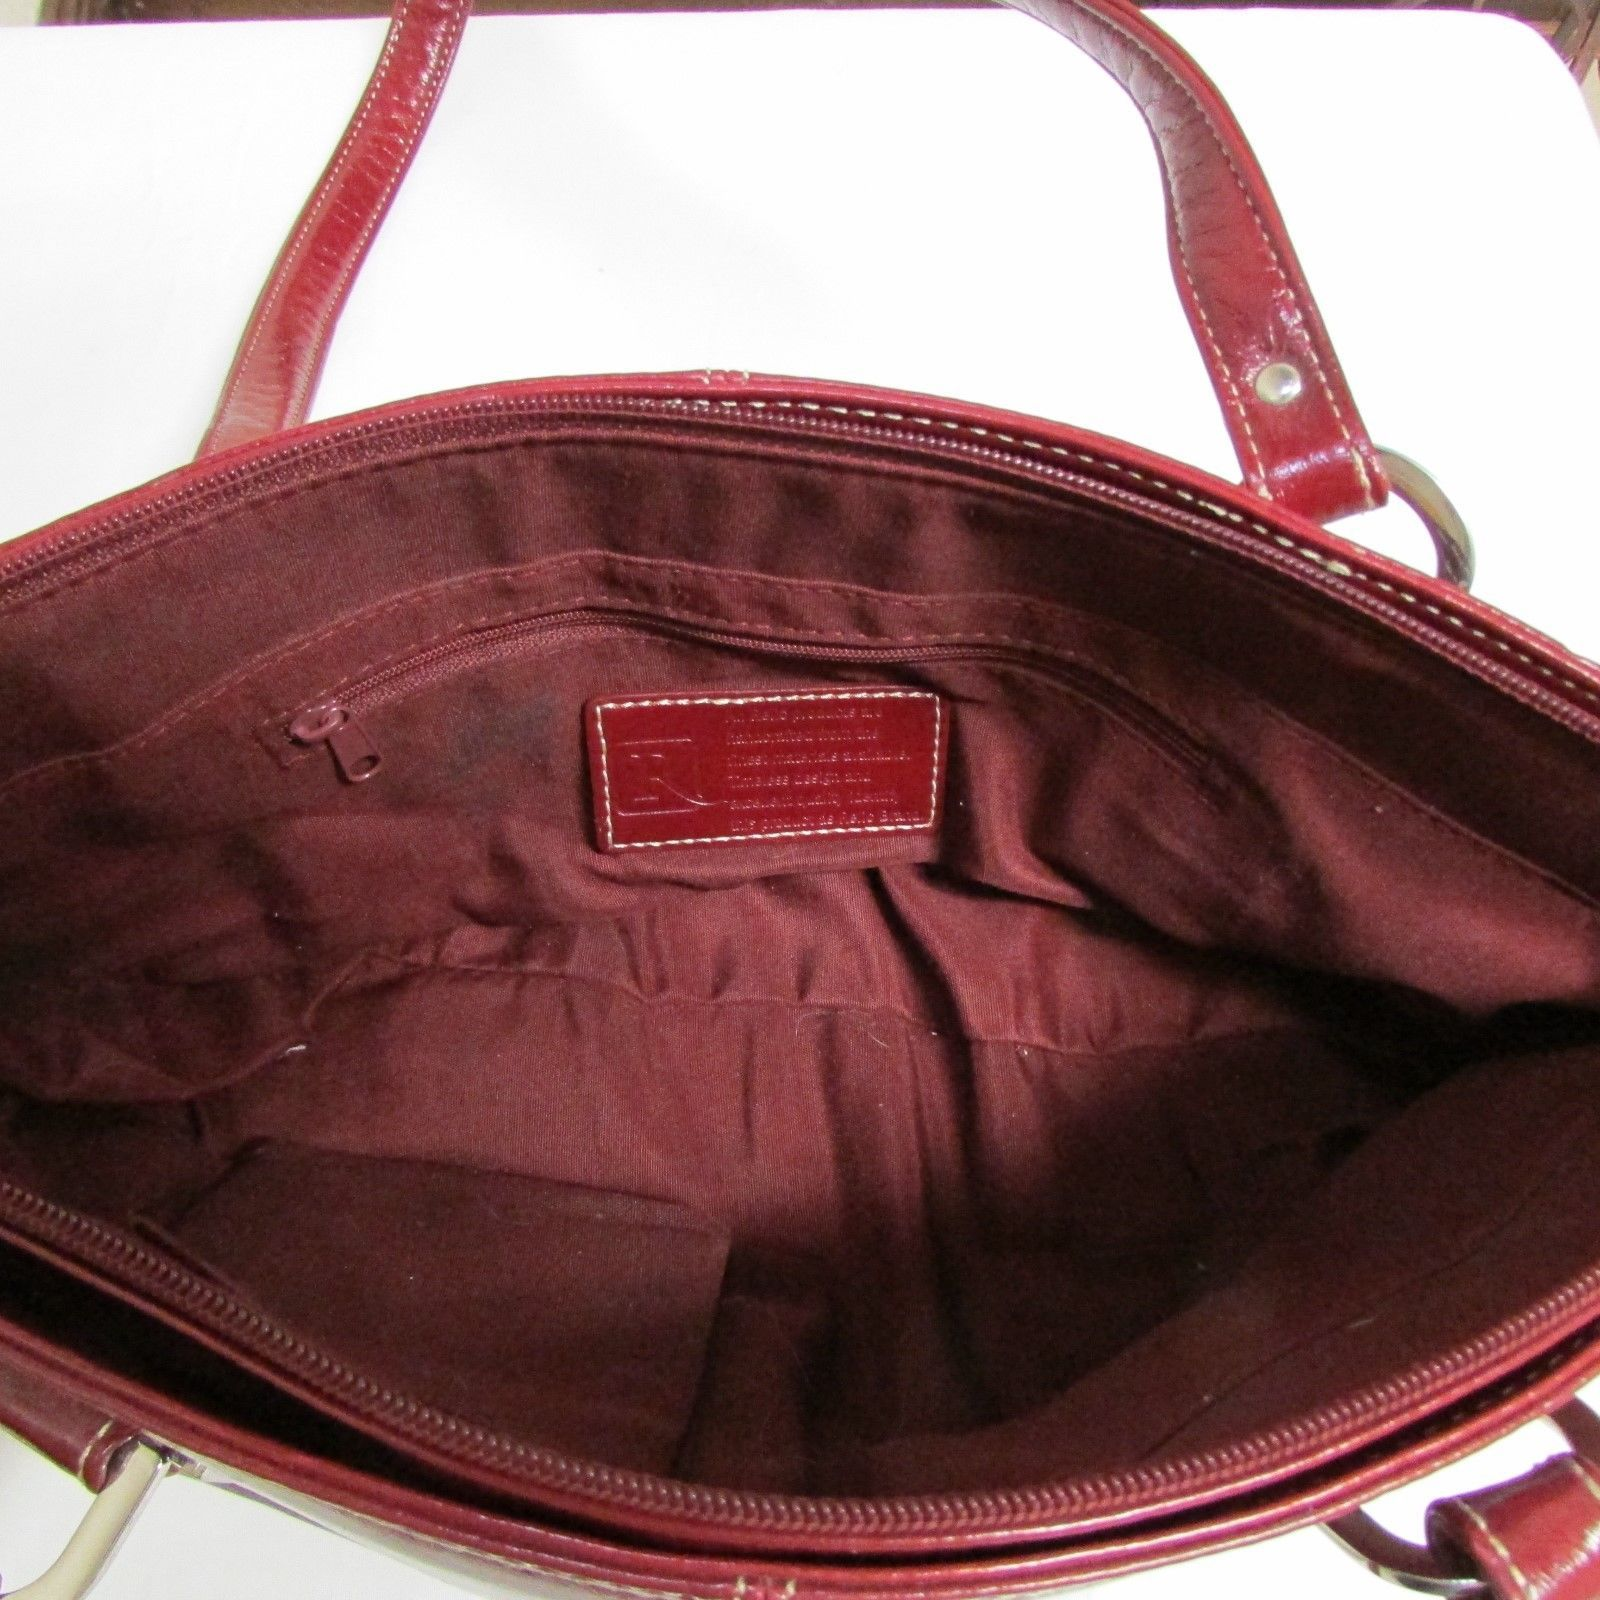 Relic Brand Cranberry Red Faux Leather Shoulder Bag Size Small image 7